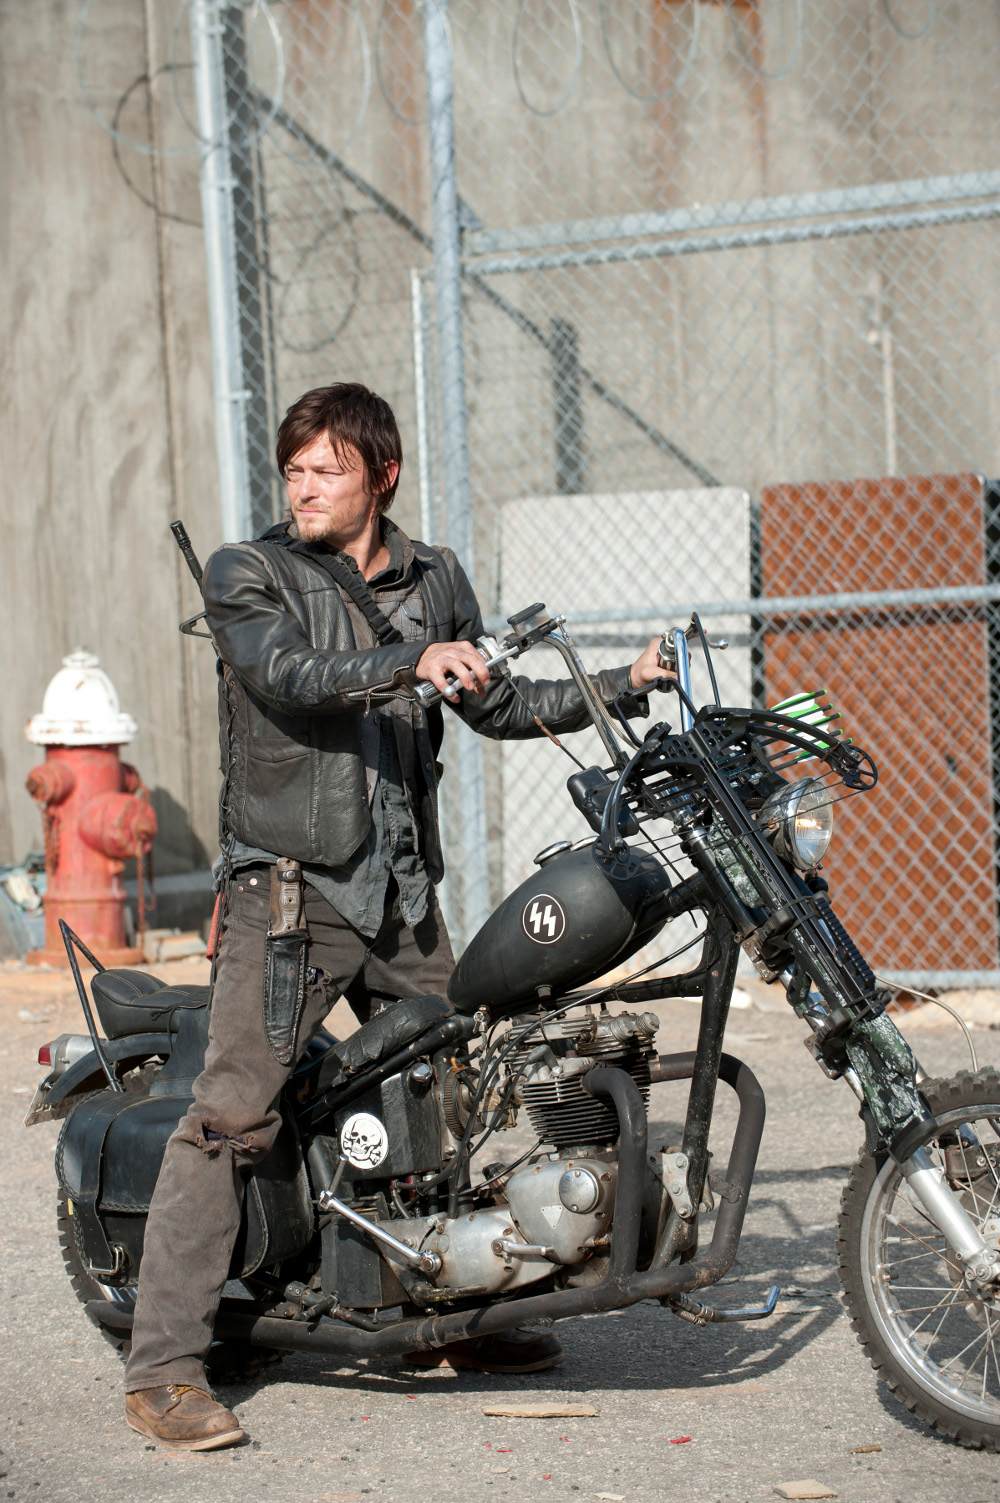 The Walking Dead Norman Reedus Season 3 Finale1 Exclusive: Revealing New Photos from The Walking Dead Finale Episode